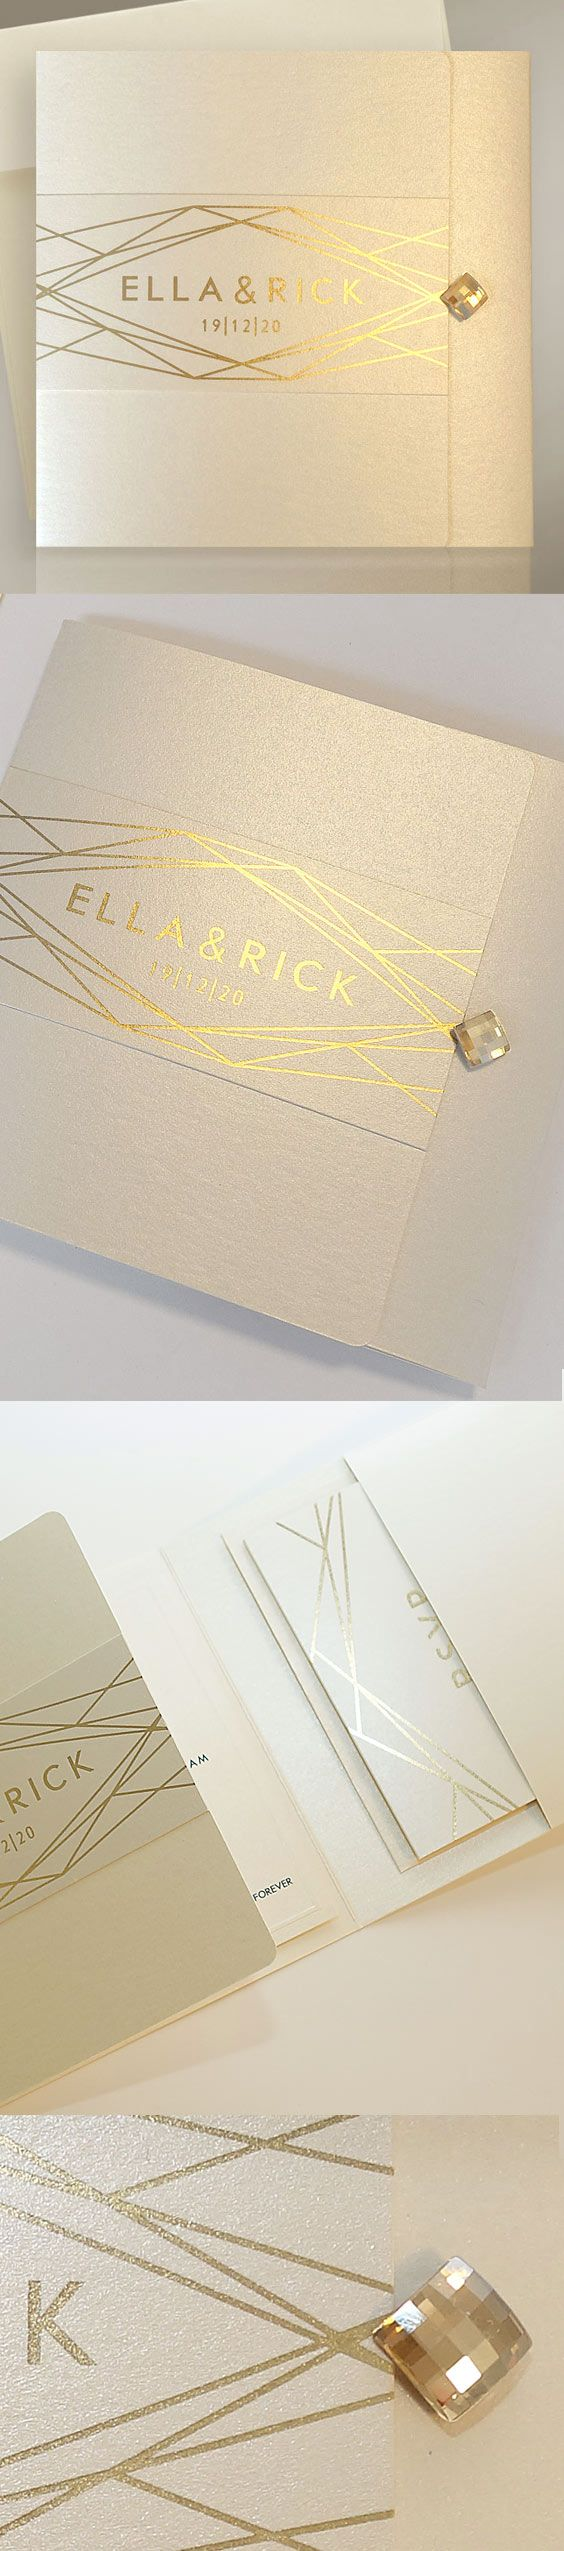 The 32 best LUXURY WEDDING STATIONERY FROM POLINA PERRI images on ...